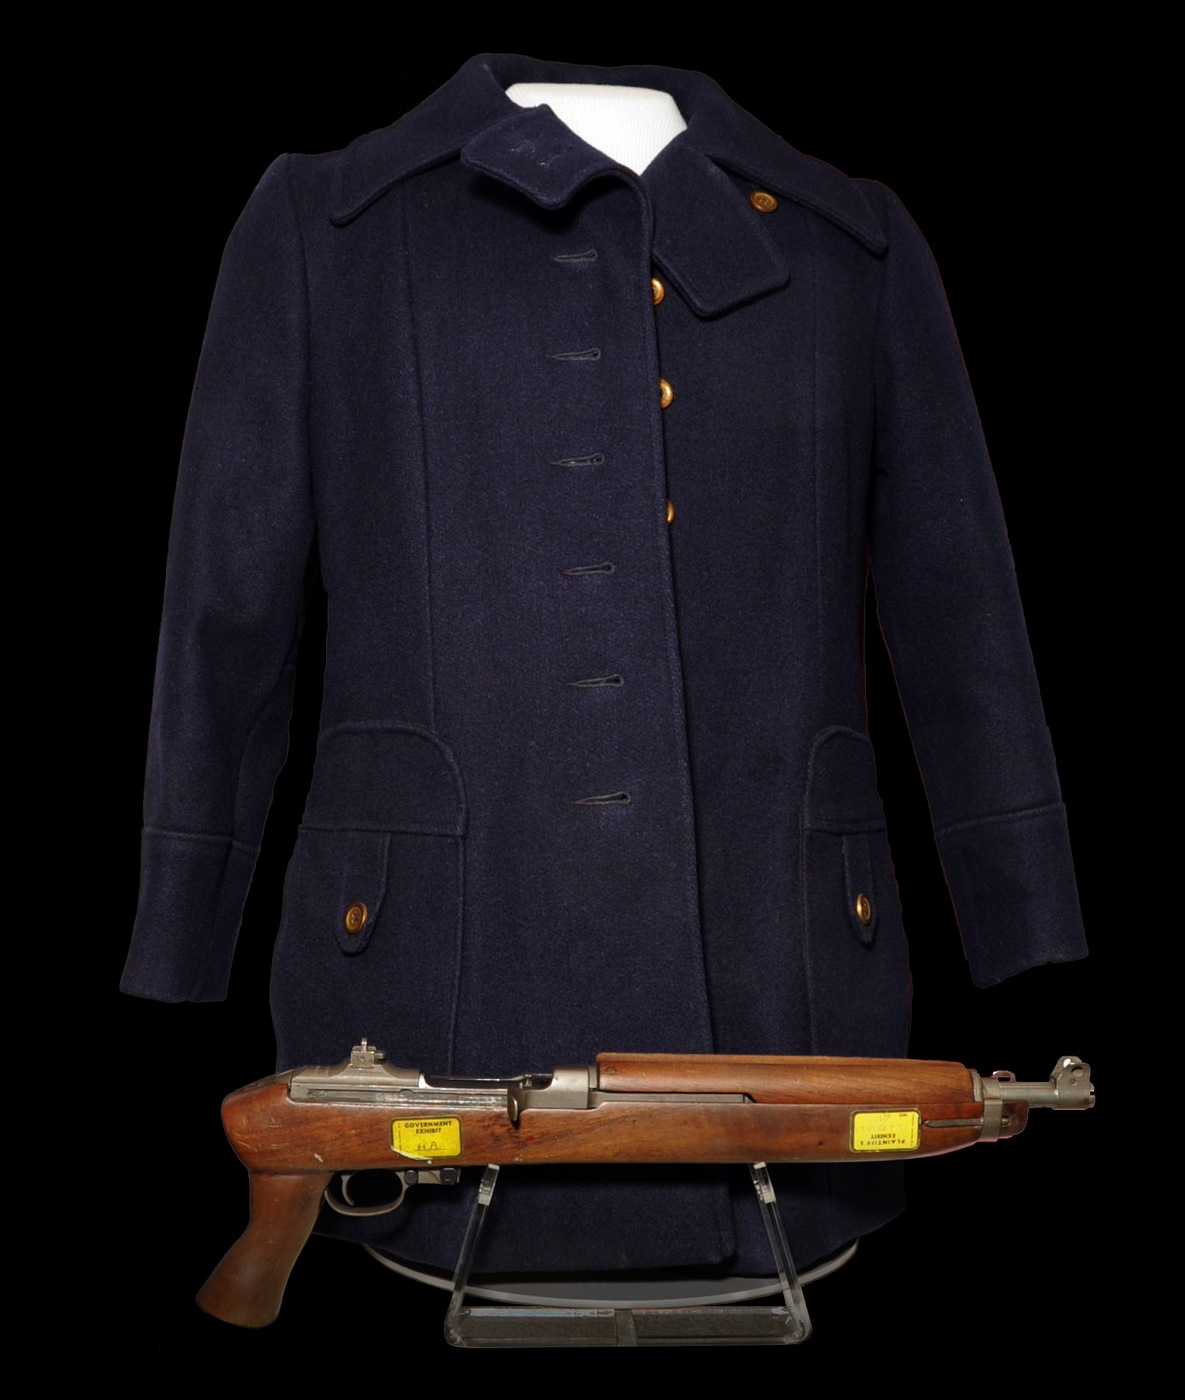 Photo of a blue coat and long gun used by Patty Hearst, an heiress who was kidnapped by the Symbionese Liberation Army in 1974. Hearst participated in a bank robbery with the SLA.